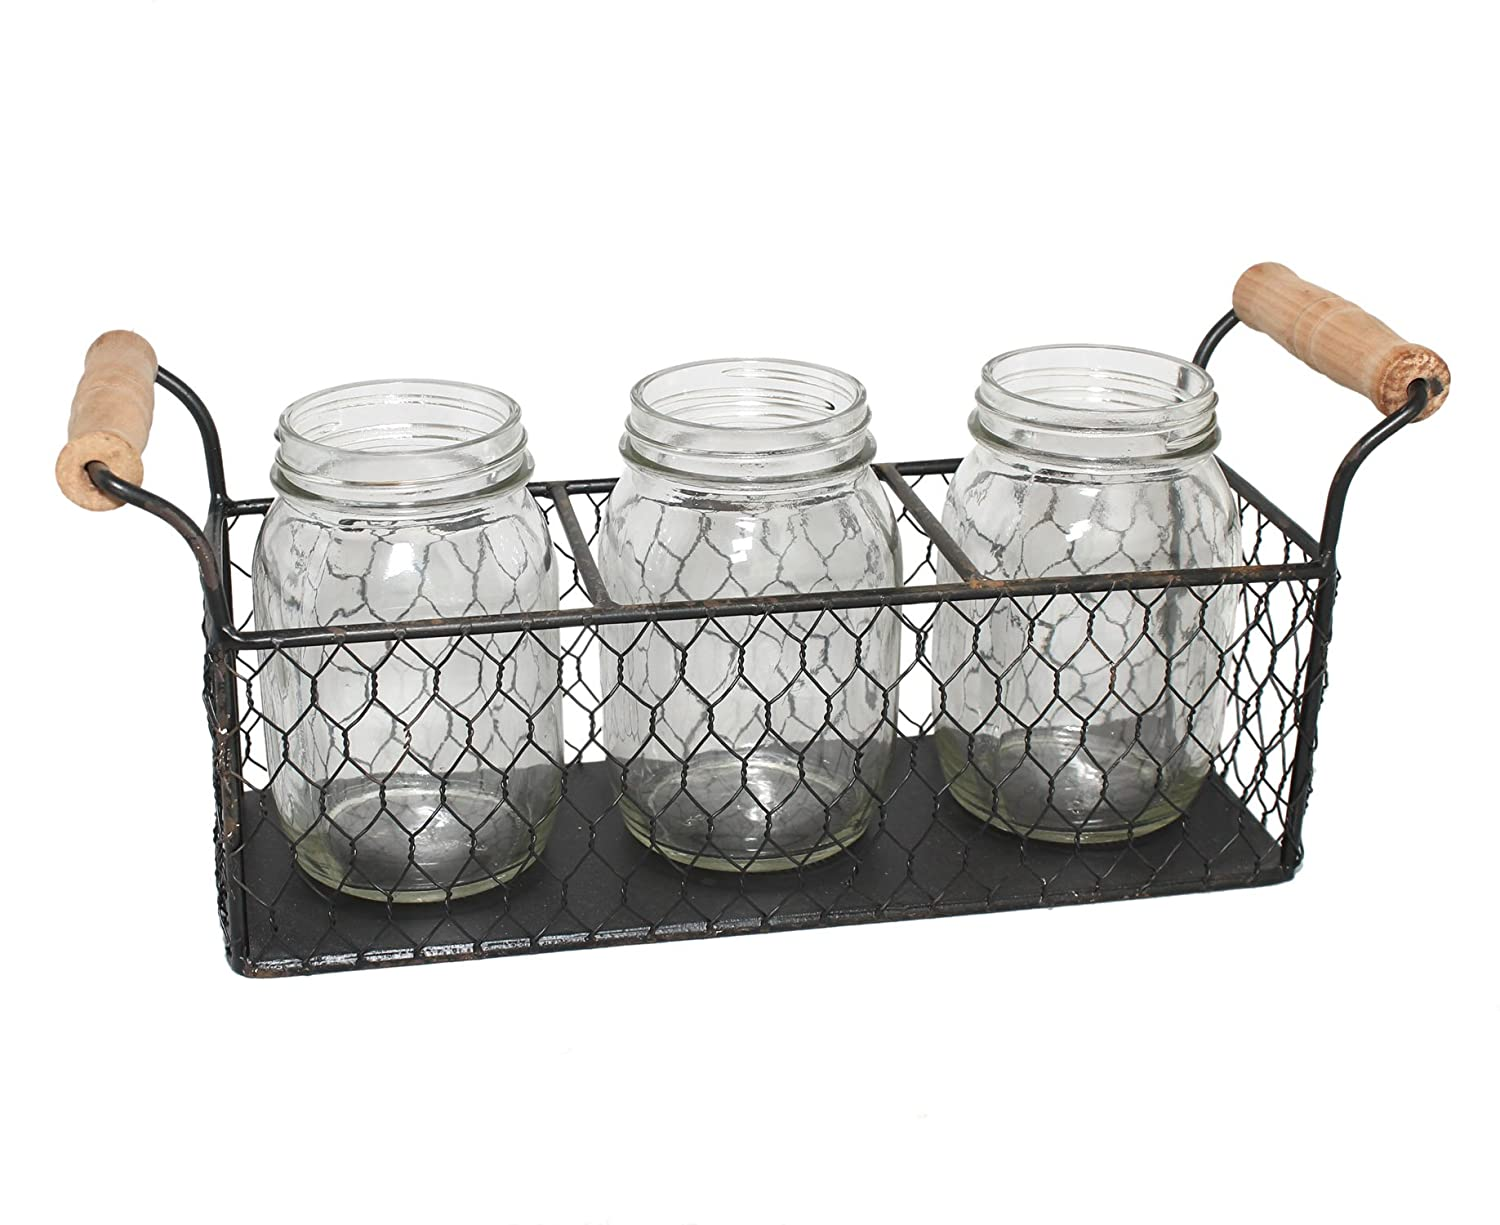 Amazon.com: Rustic Mason Jar and Chicken Wire Caddy Set: Kitchen ...